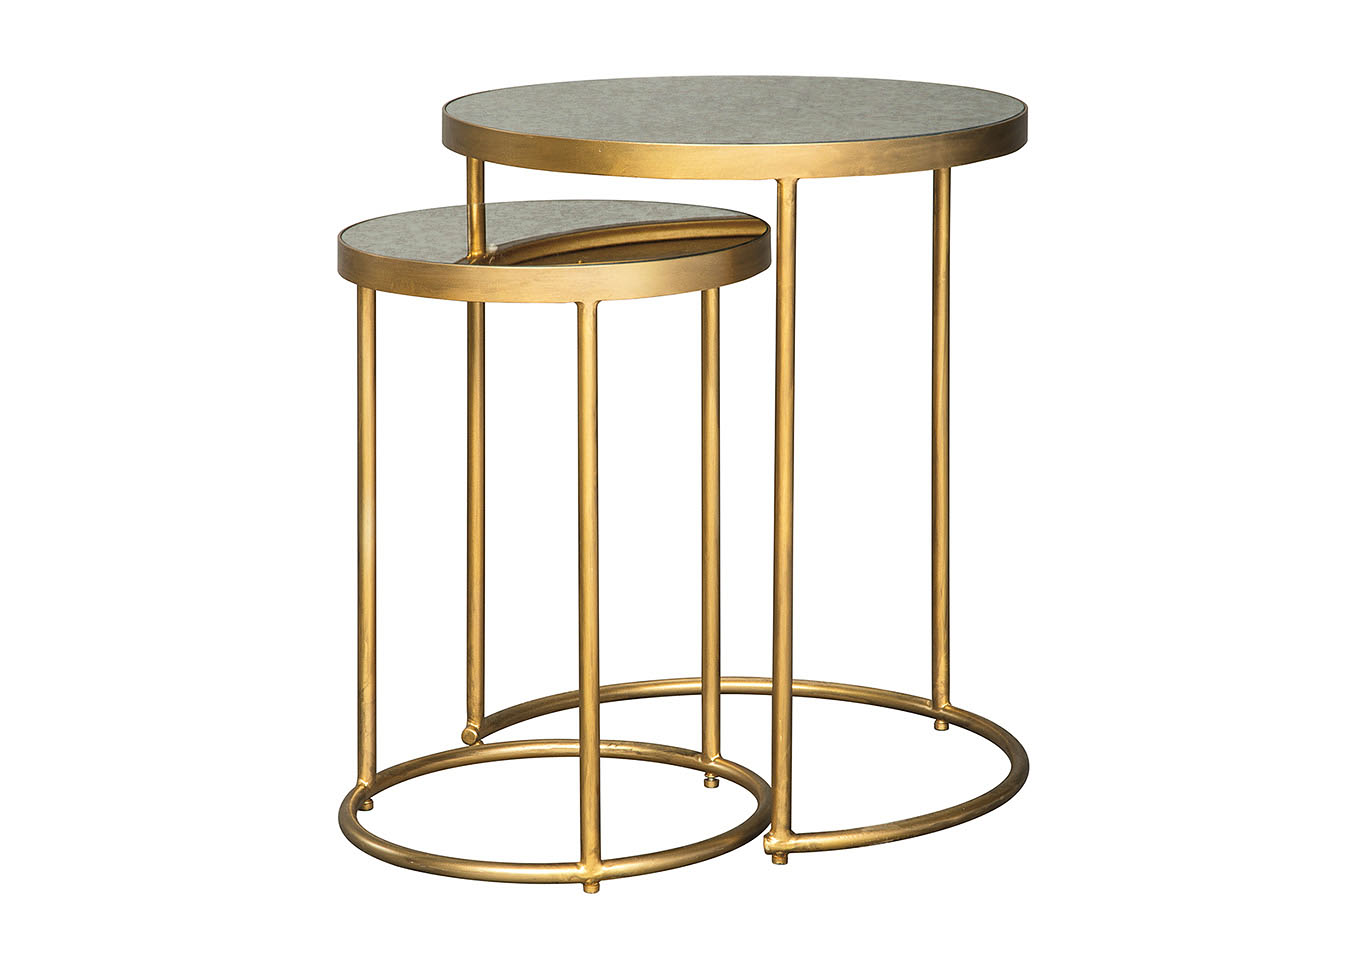 furniture plus majaci gold finish white accent table set signature design wicker pier one timber trestle legs office small round occasional pool umbrellas bunnings new narrow